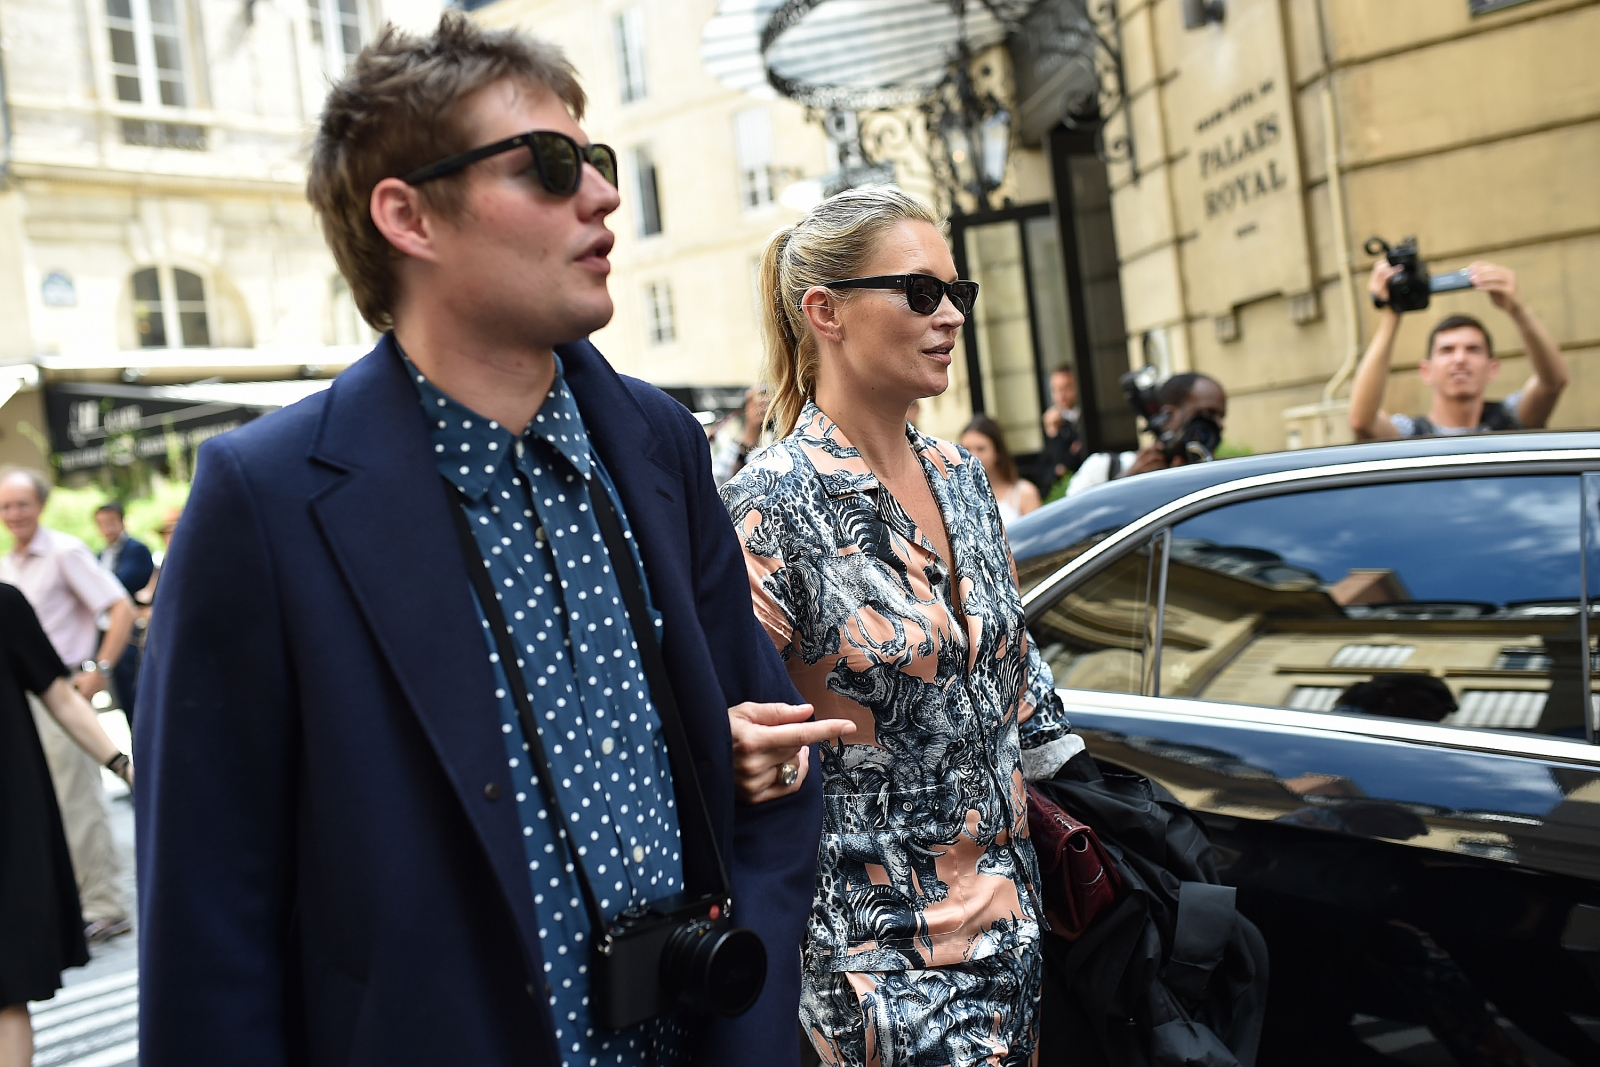 Kate Moss and Nikolai Von Bismarck are seen leaving Louis Vuitton Fashion Show